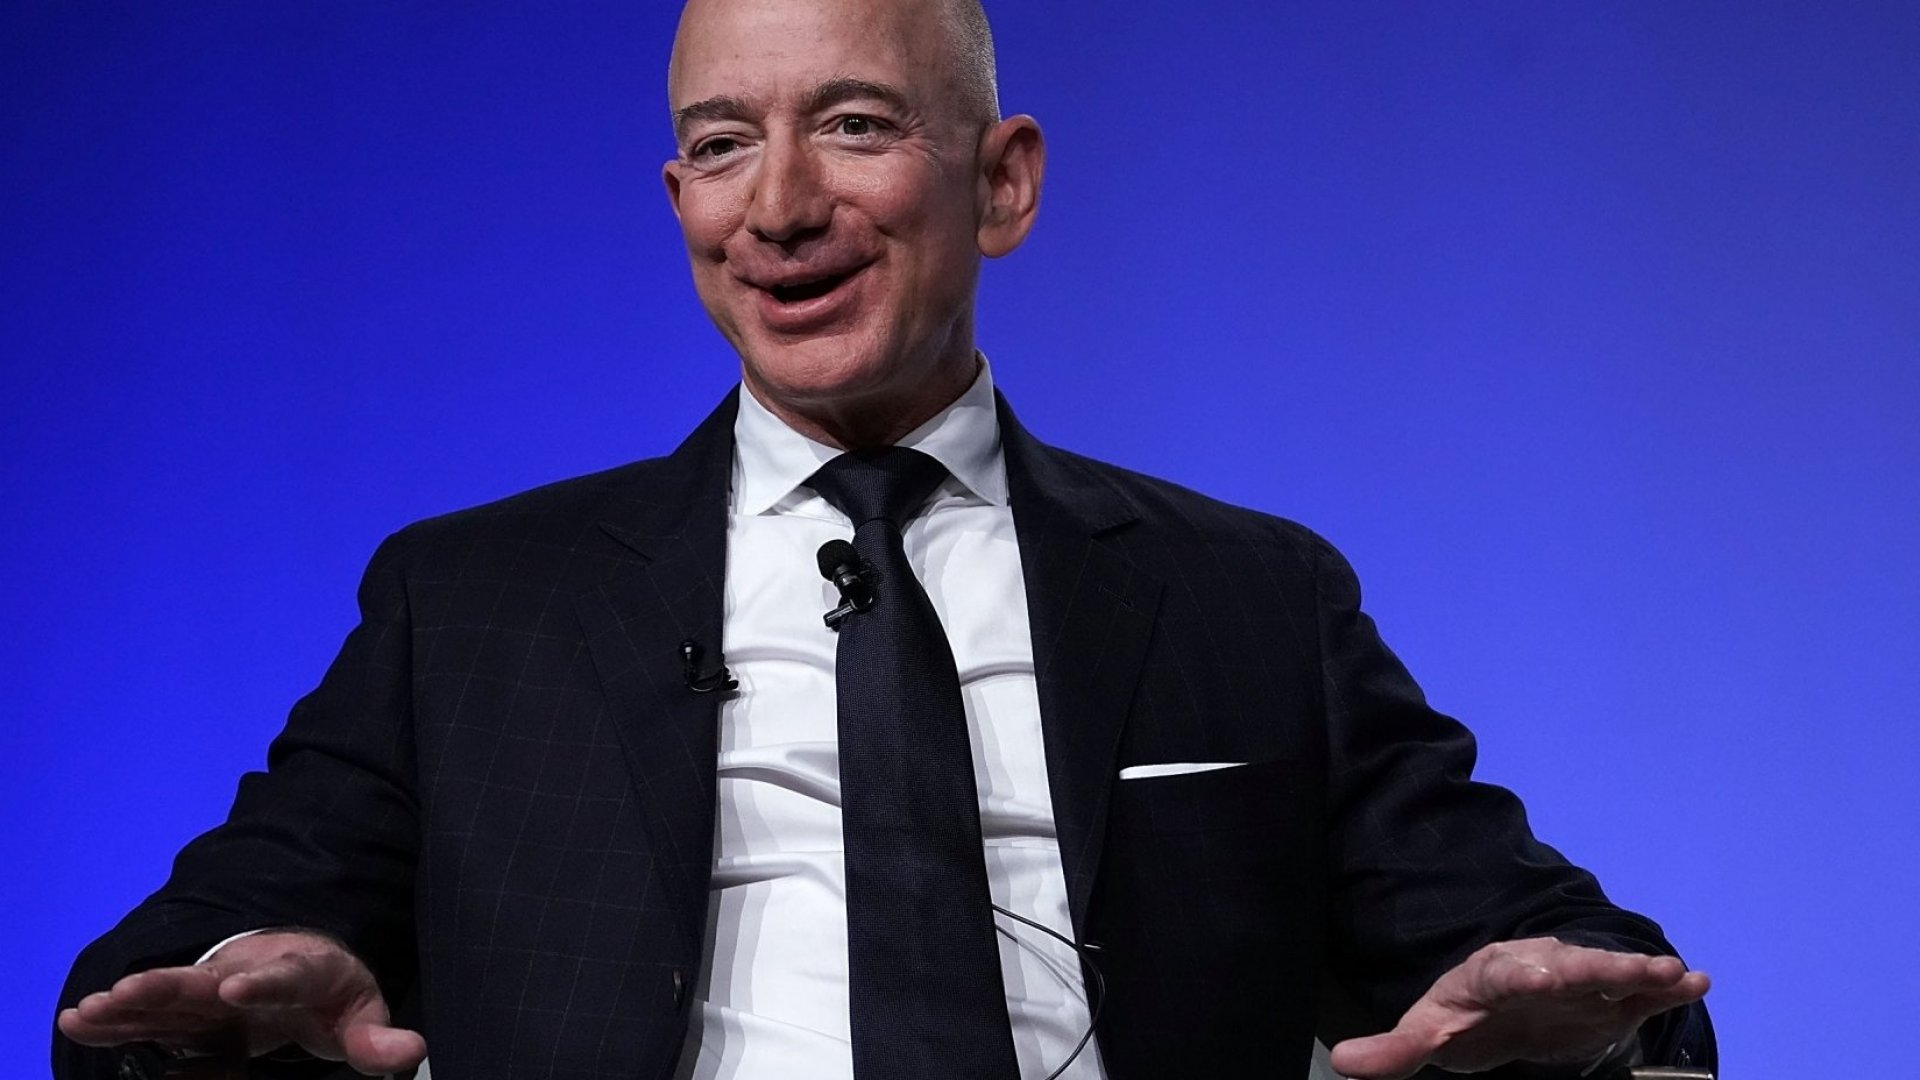 Jeff Bezos Uses This 3-Word Phrase to Decide Which New Amazon Products to Pursue